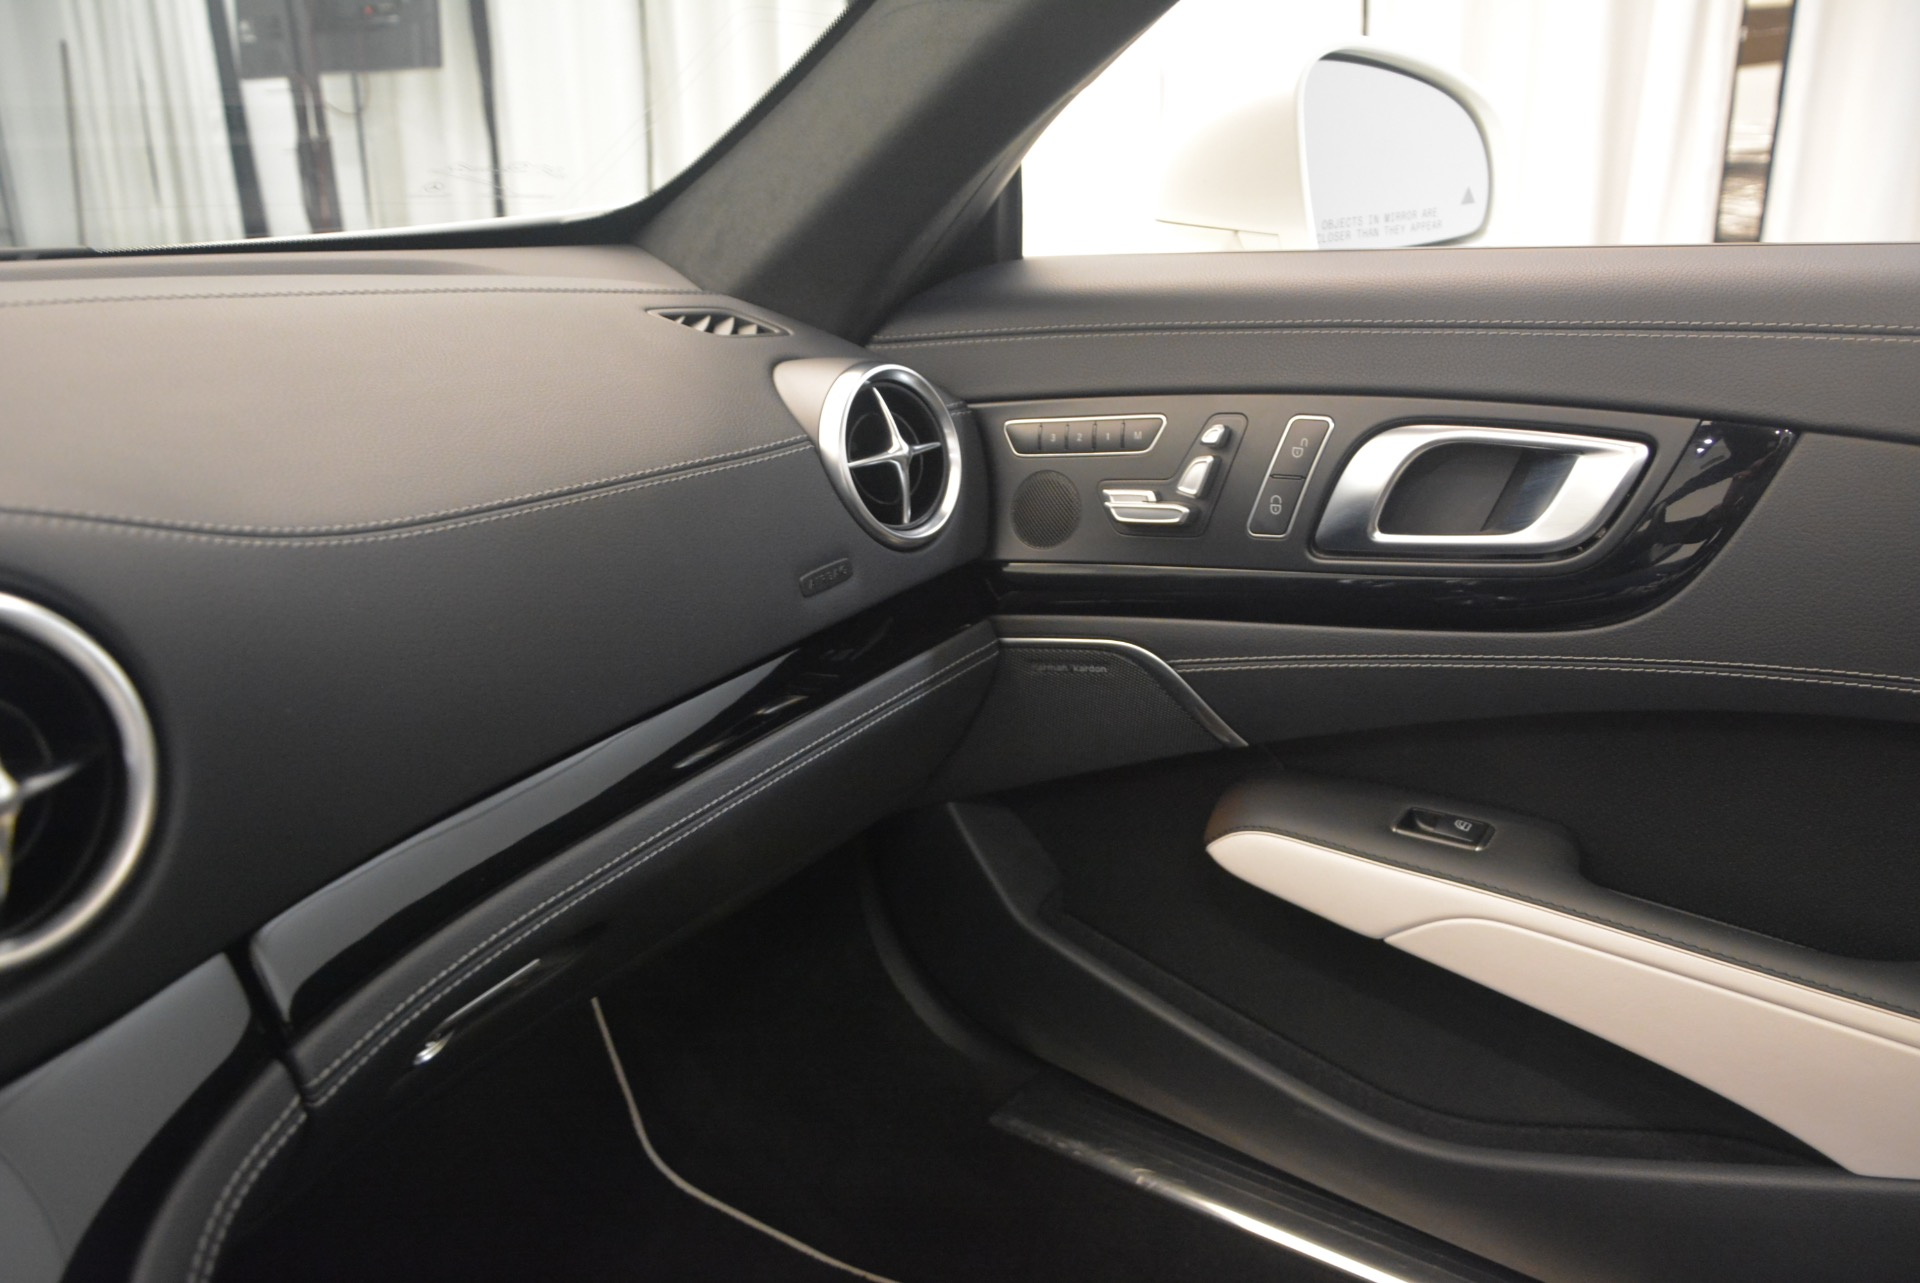 Used 2015 Mercedes Benz SL-Class SL 550 For Sale In Westport, CT 1261_p36